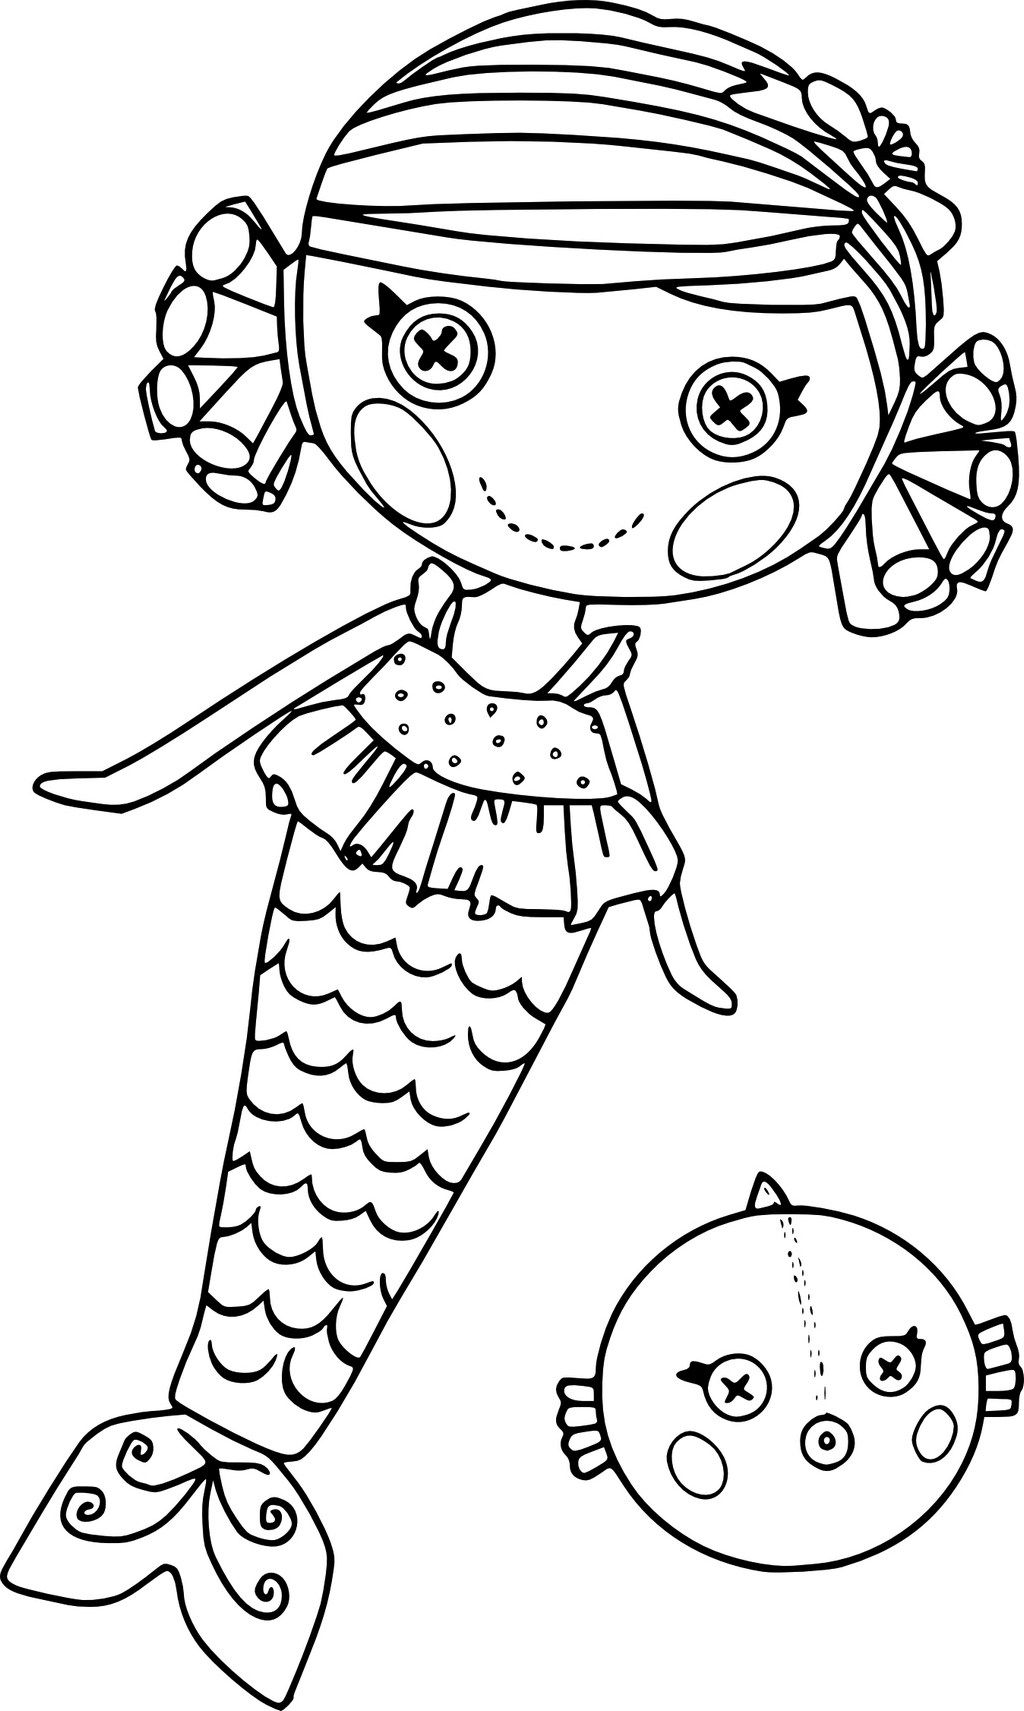 Lalaloopsy Mermaid Coloring Page